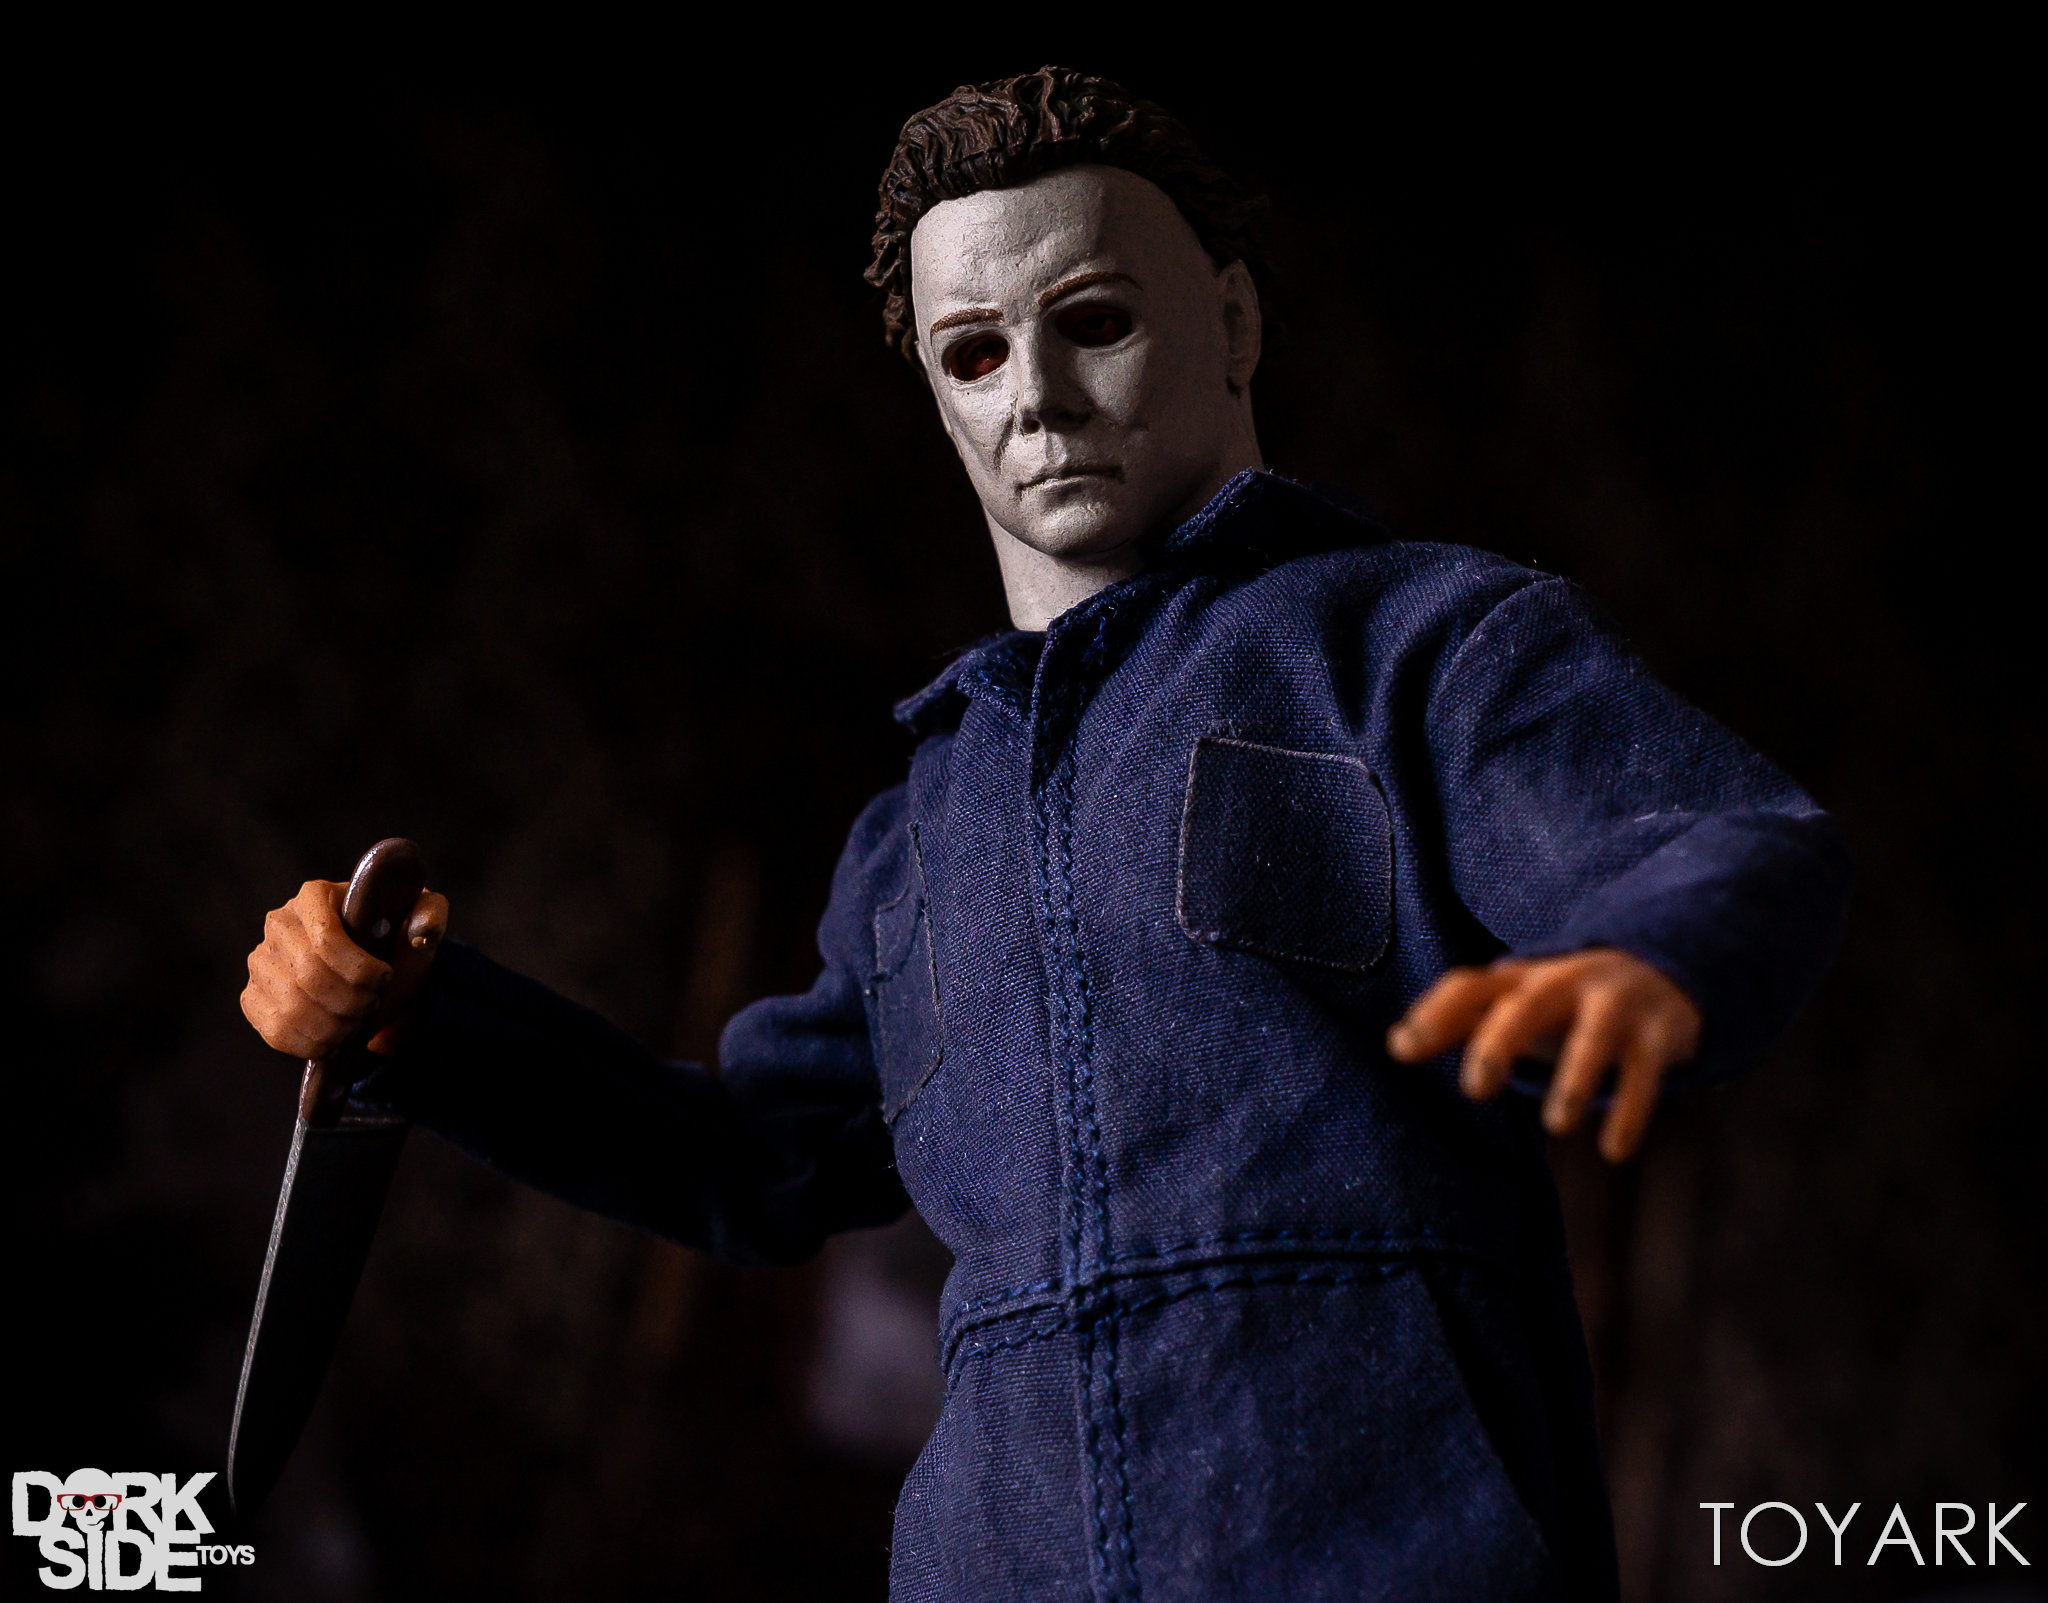 https://news.toyark.com/wp-content/uploads/sites/4/2018/10/Mezco-One12-Michael-Myers-047.jpg